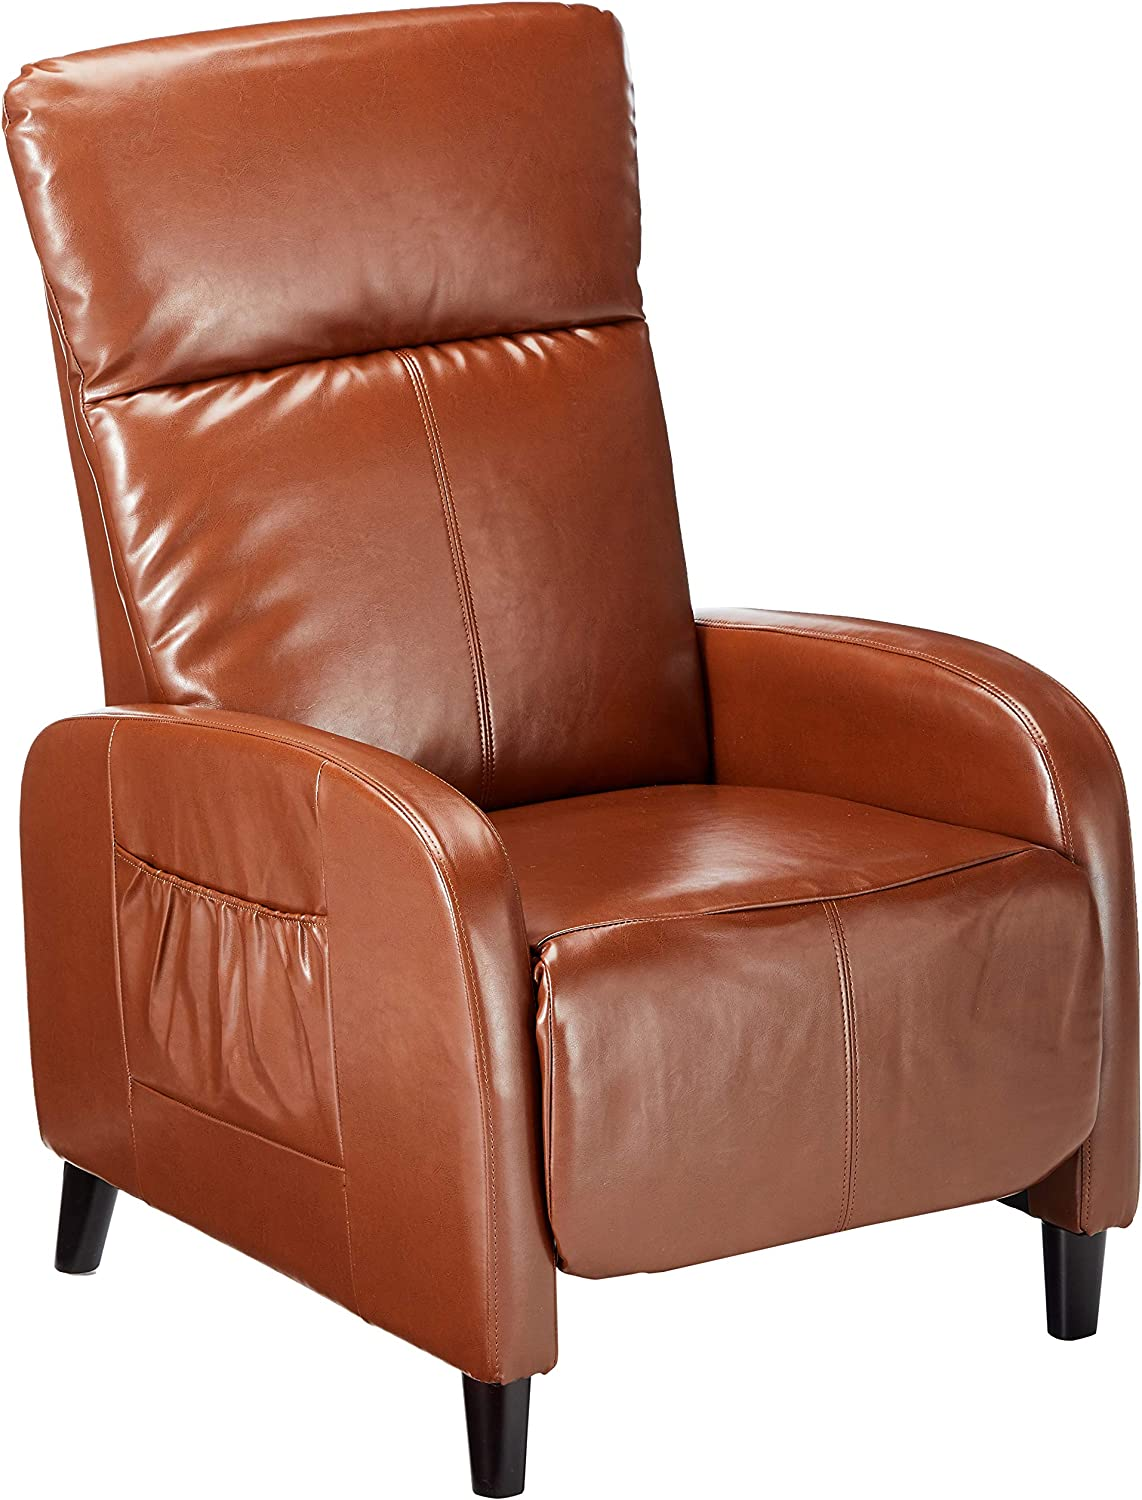 Christopher Knight Home Trenton Hazelnut Brown Leather Recliner